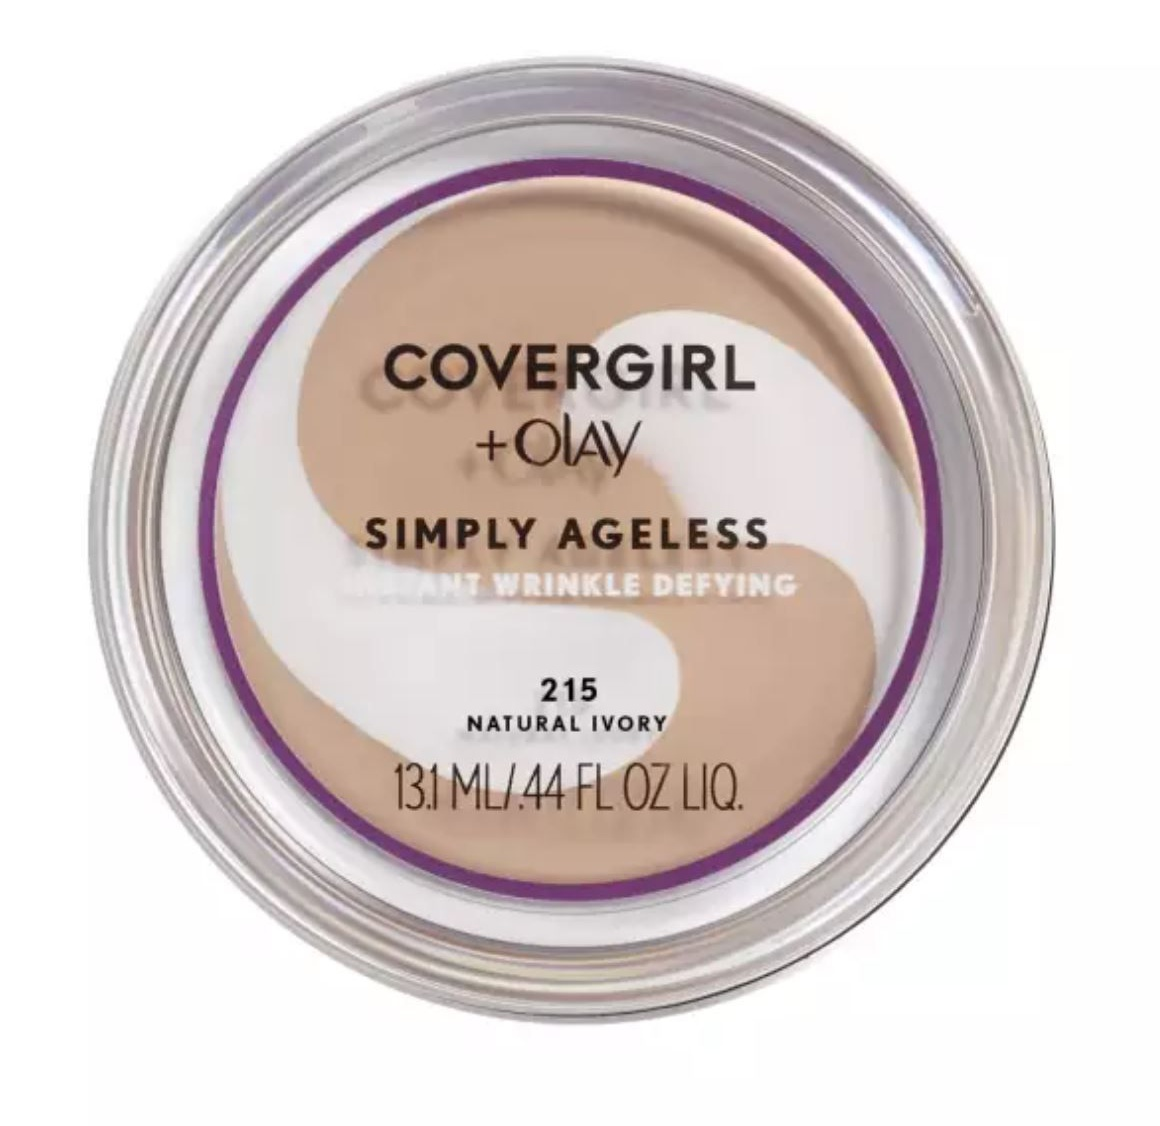 CoverGirl And Olay Simply Ageless  Instant Wrinkle-Defying Foundation